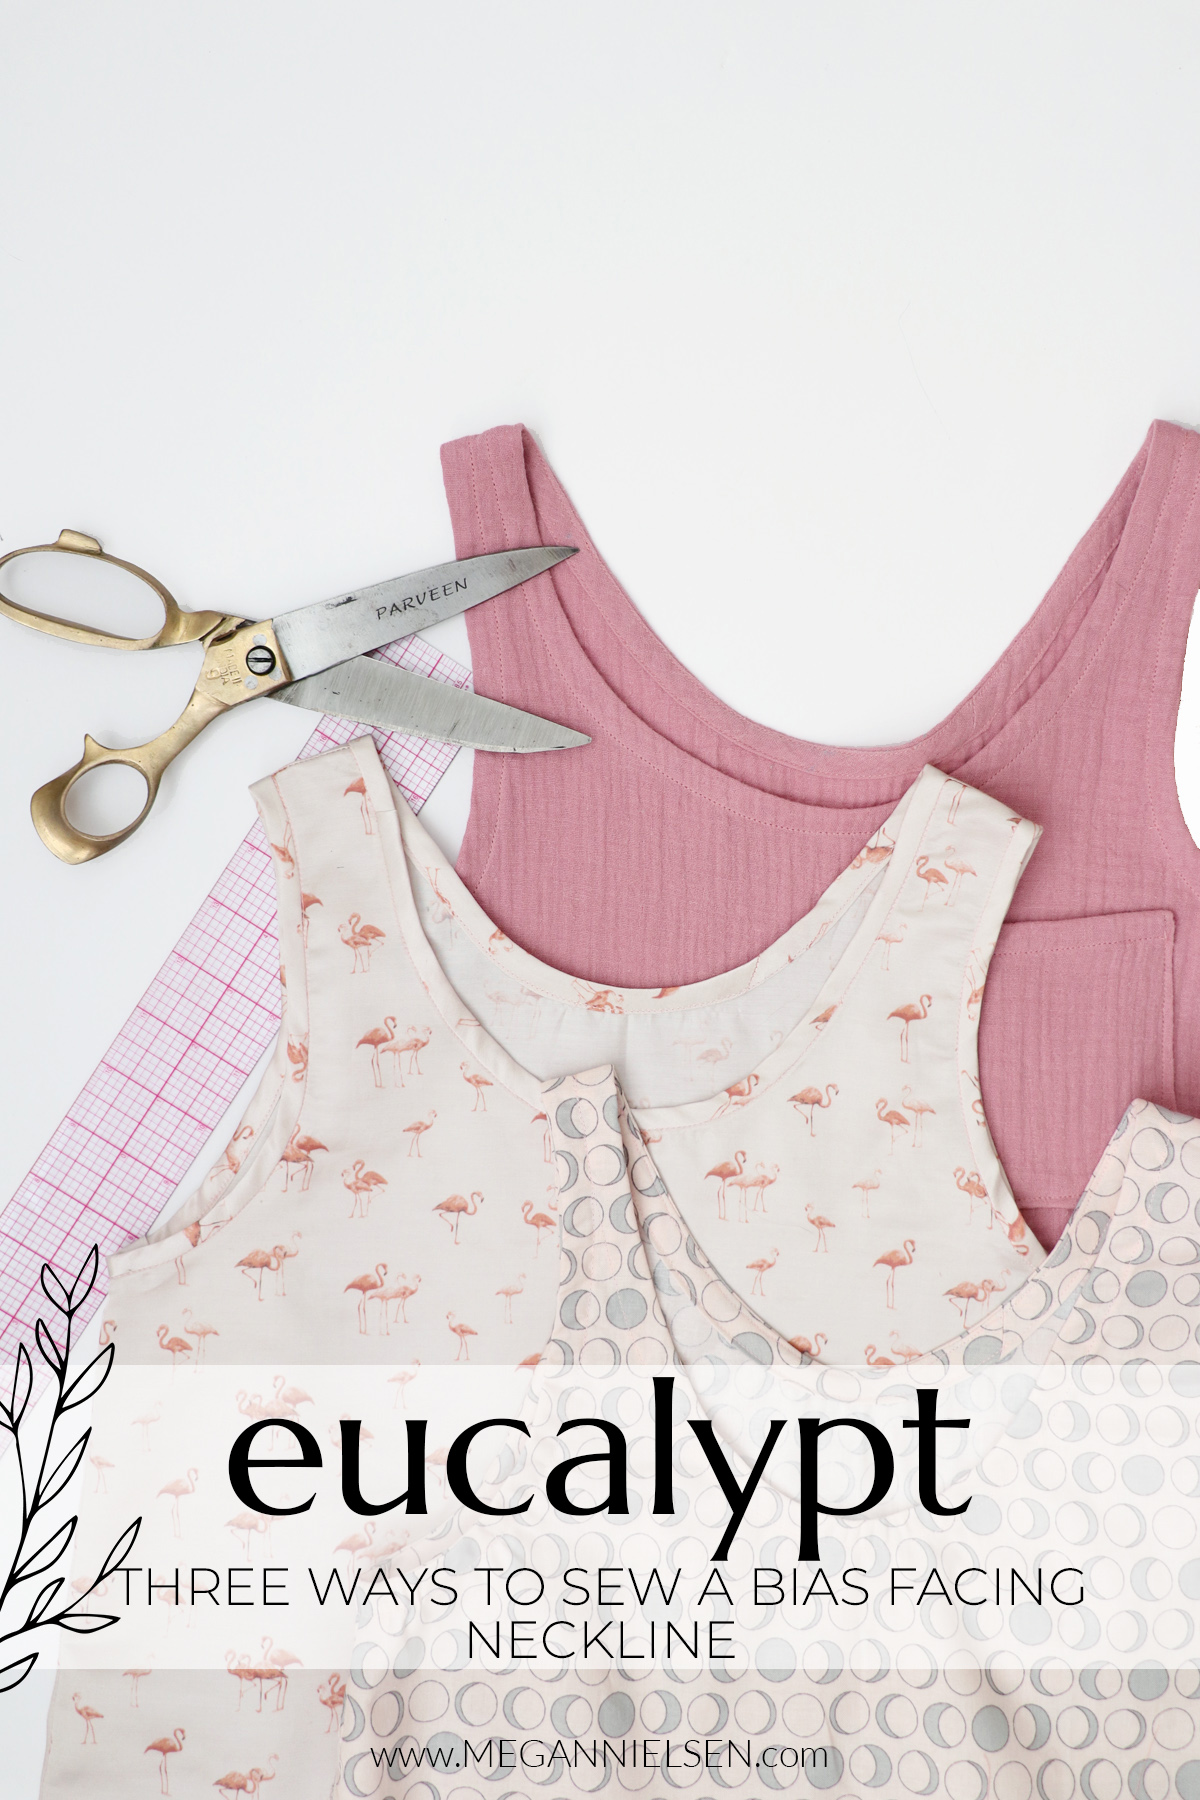 How to sew a bias facing neckline three ways for the Eucalypt dress and top pattern